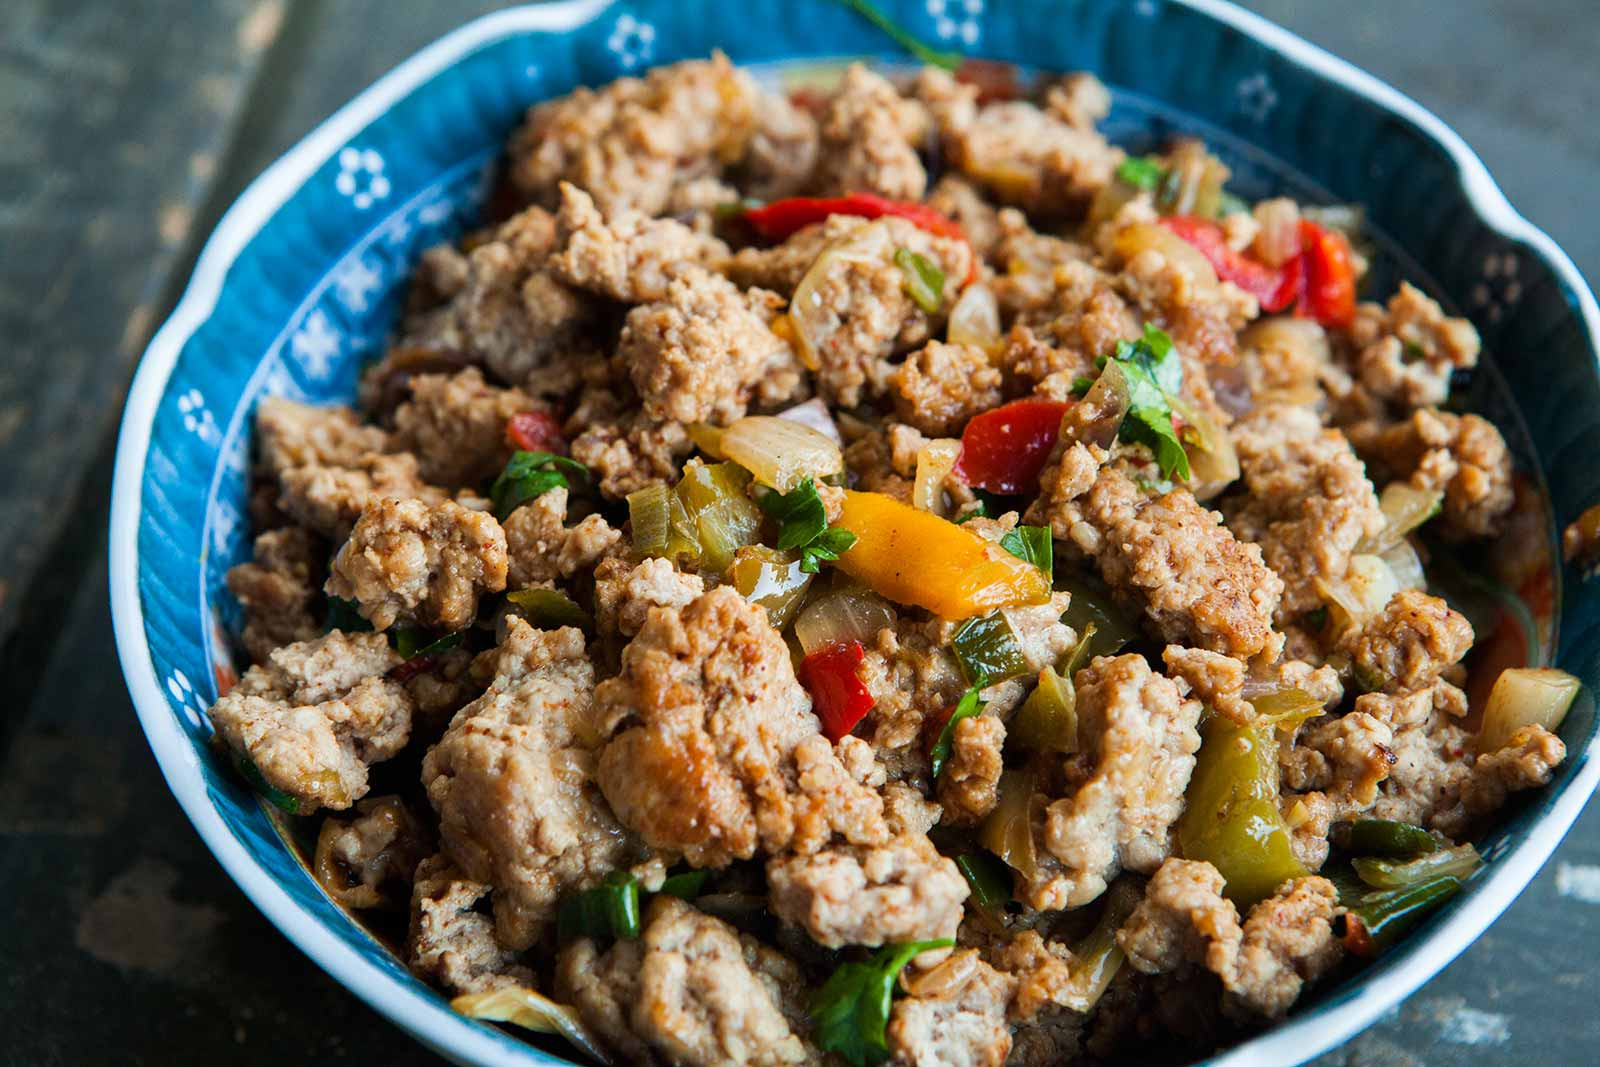 Ground Turkey Healthy Recipe  Mom s Ground Turkey and Peppers 1 Pot Meal